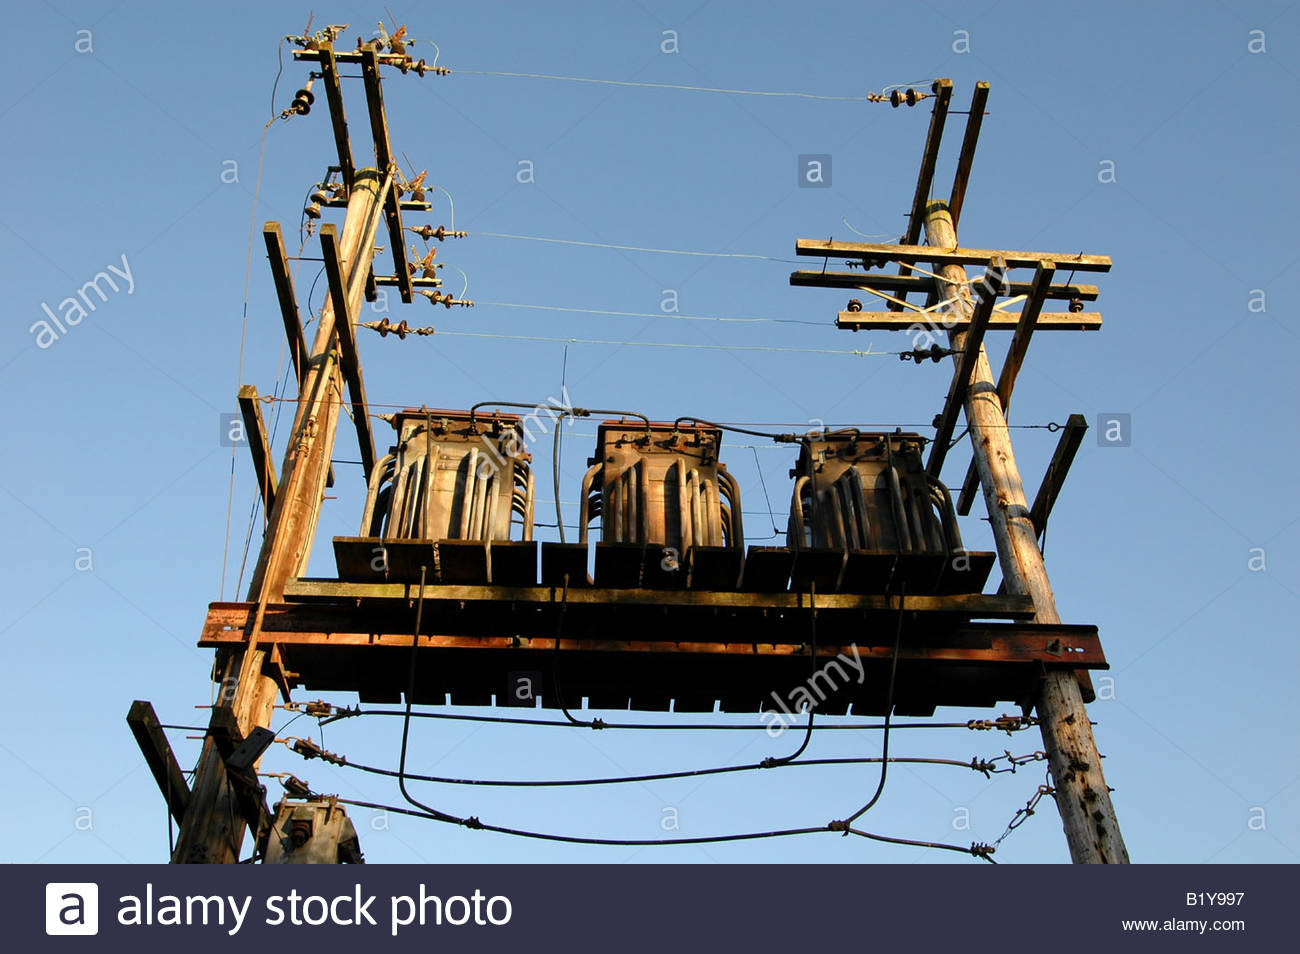 hight resolution of an old fashioned electrical transformer from the 1950s mounted on a platform between two wooden masts in vancouver canada